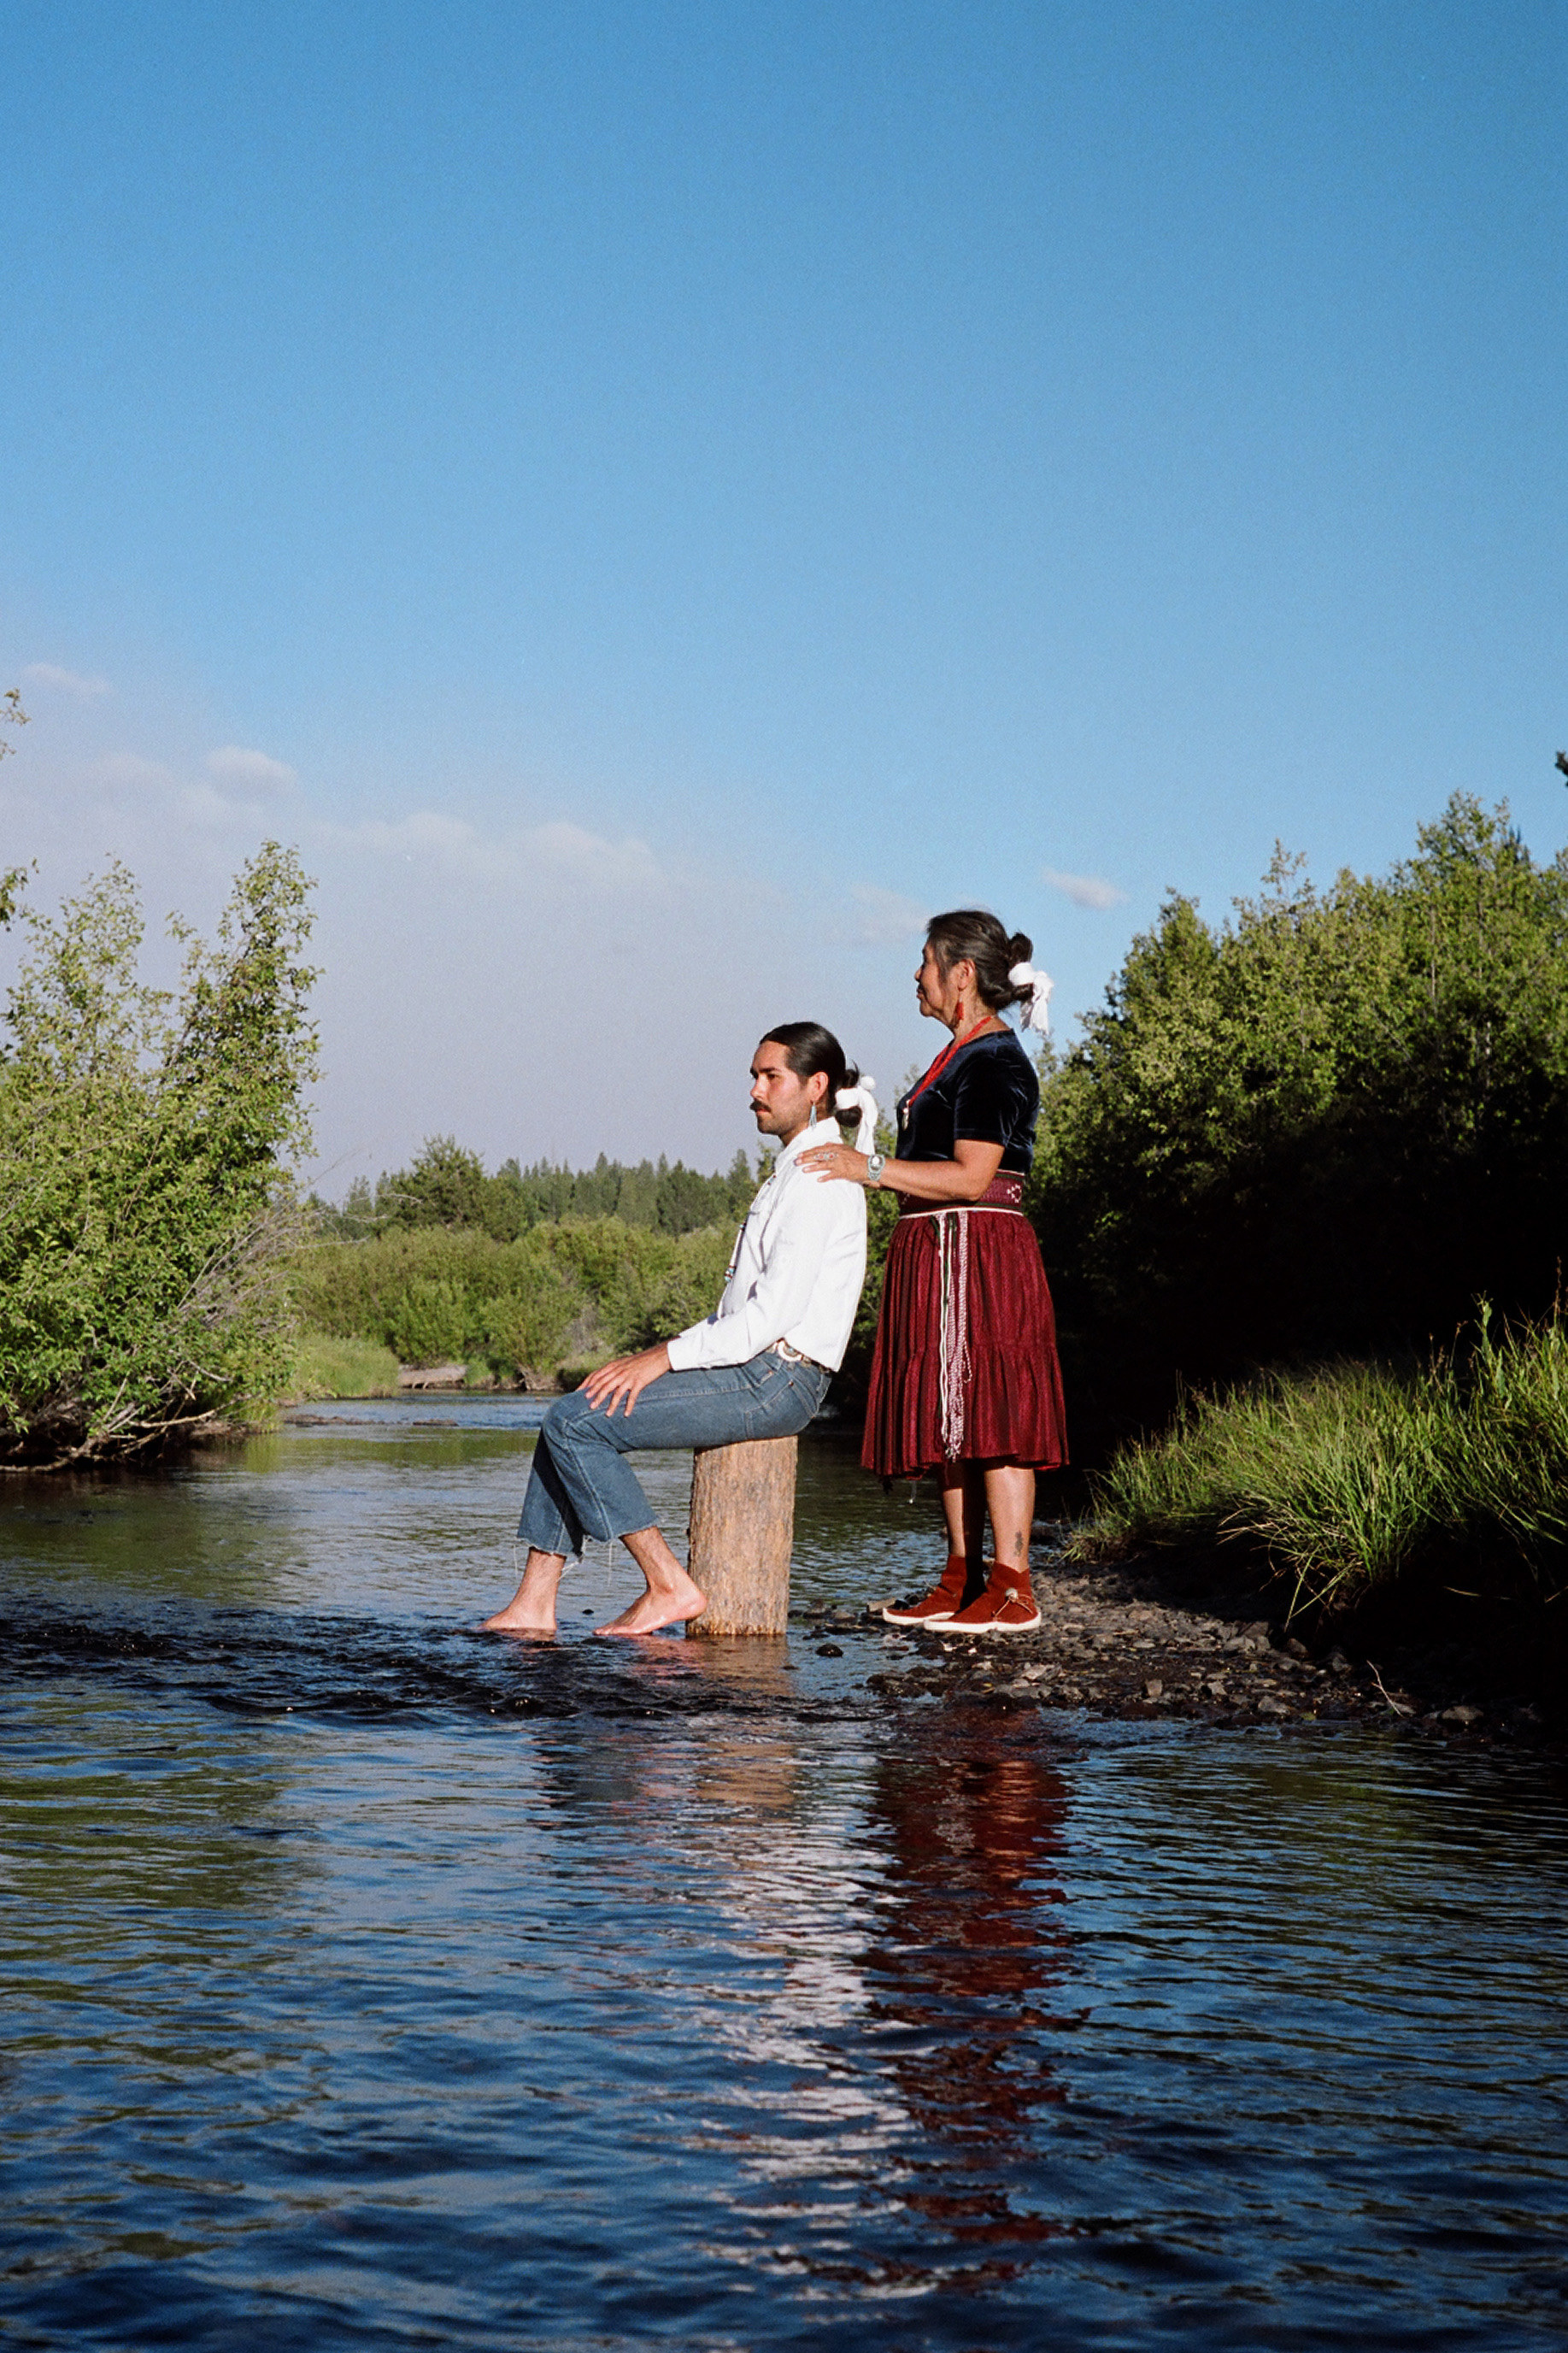 shimá ayóó (mother's love), taken on ancestral lands of the Yahooskin and Northern Paiute